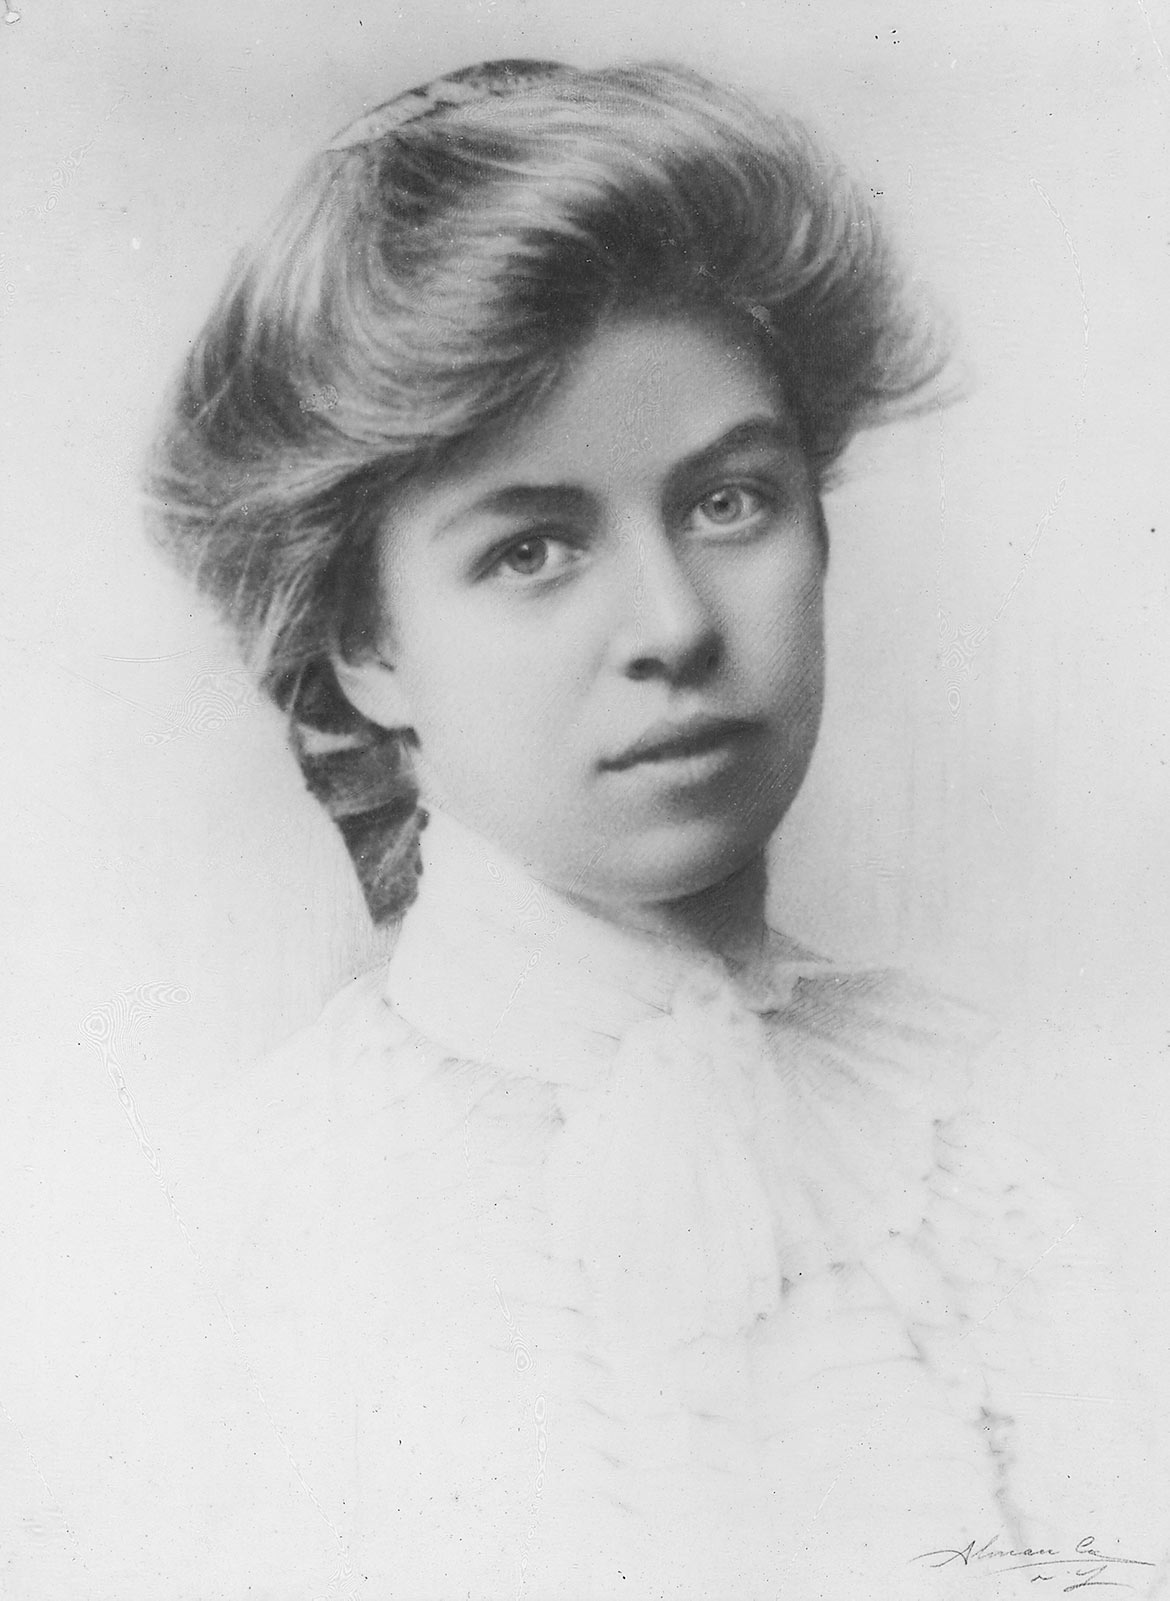 Eleanor Roosevelt, school portrait